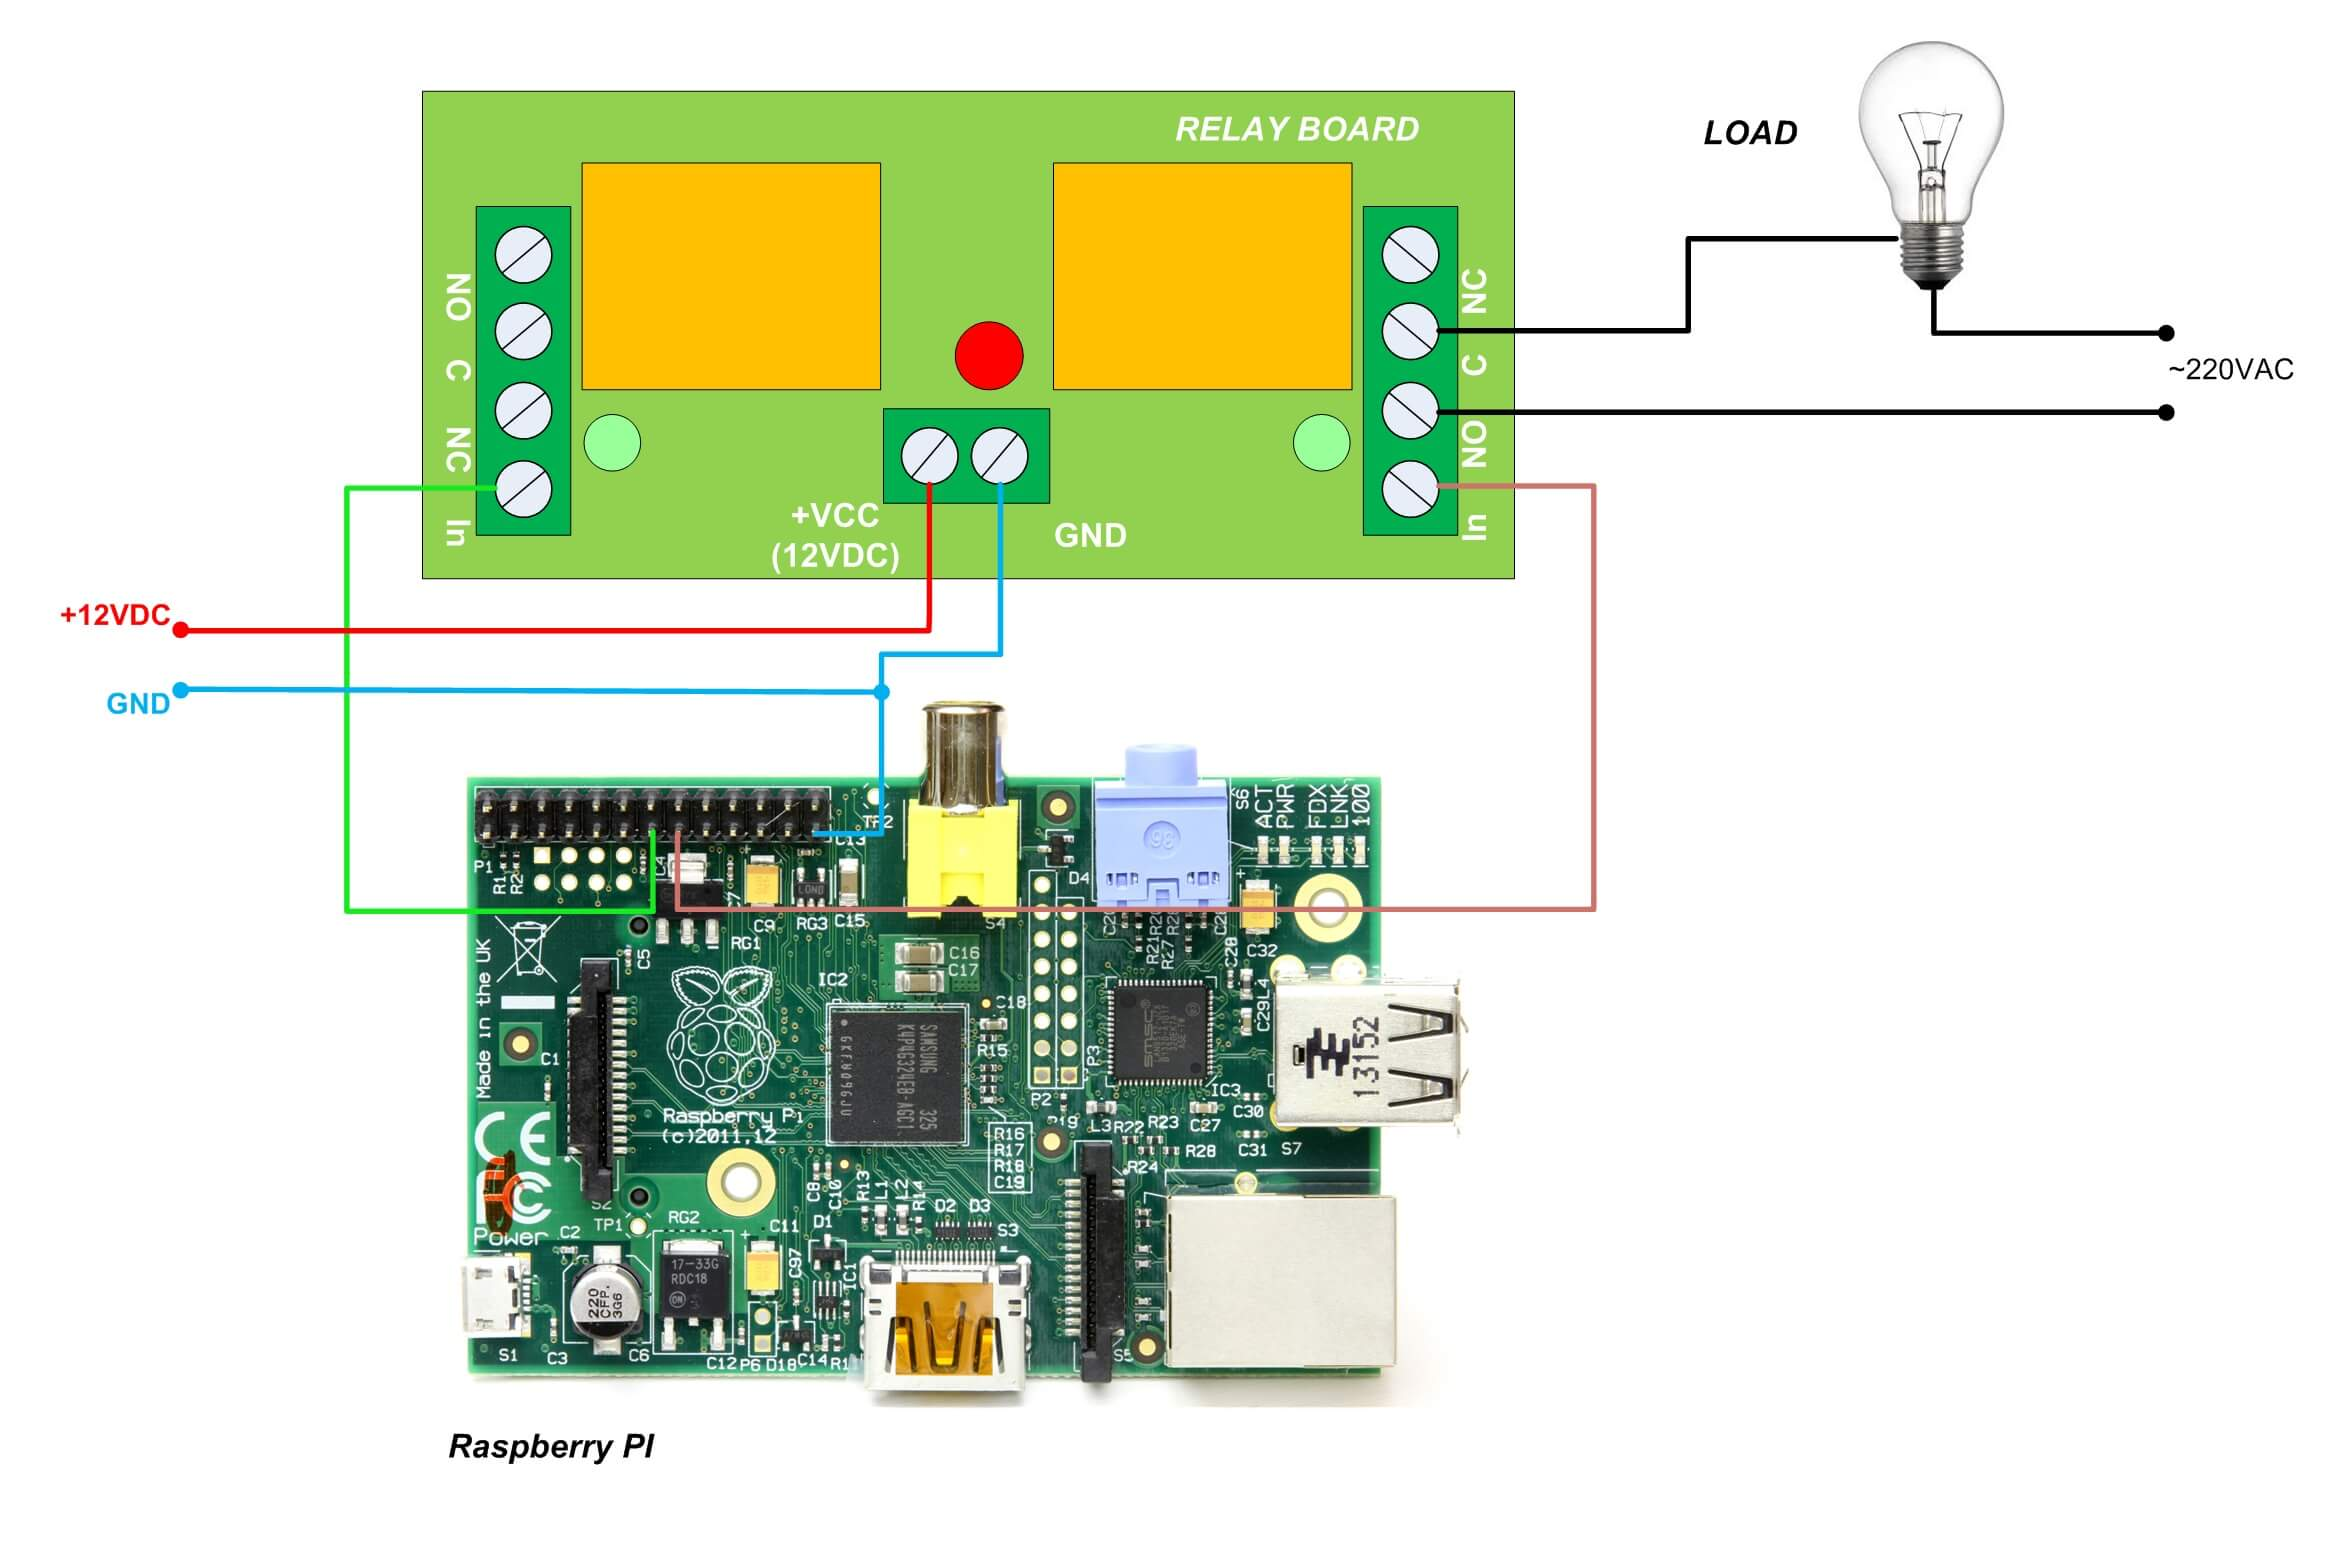 relay board connected to Raspberry PI